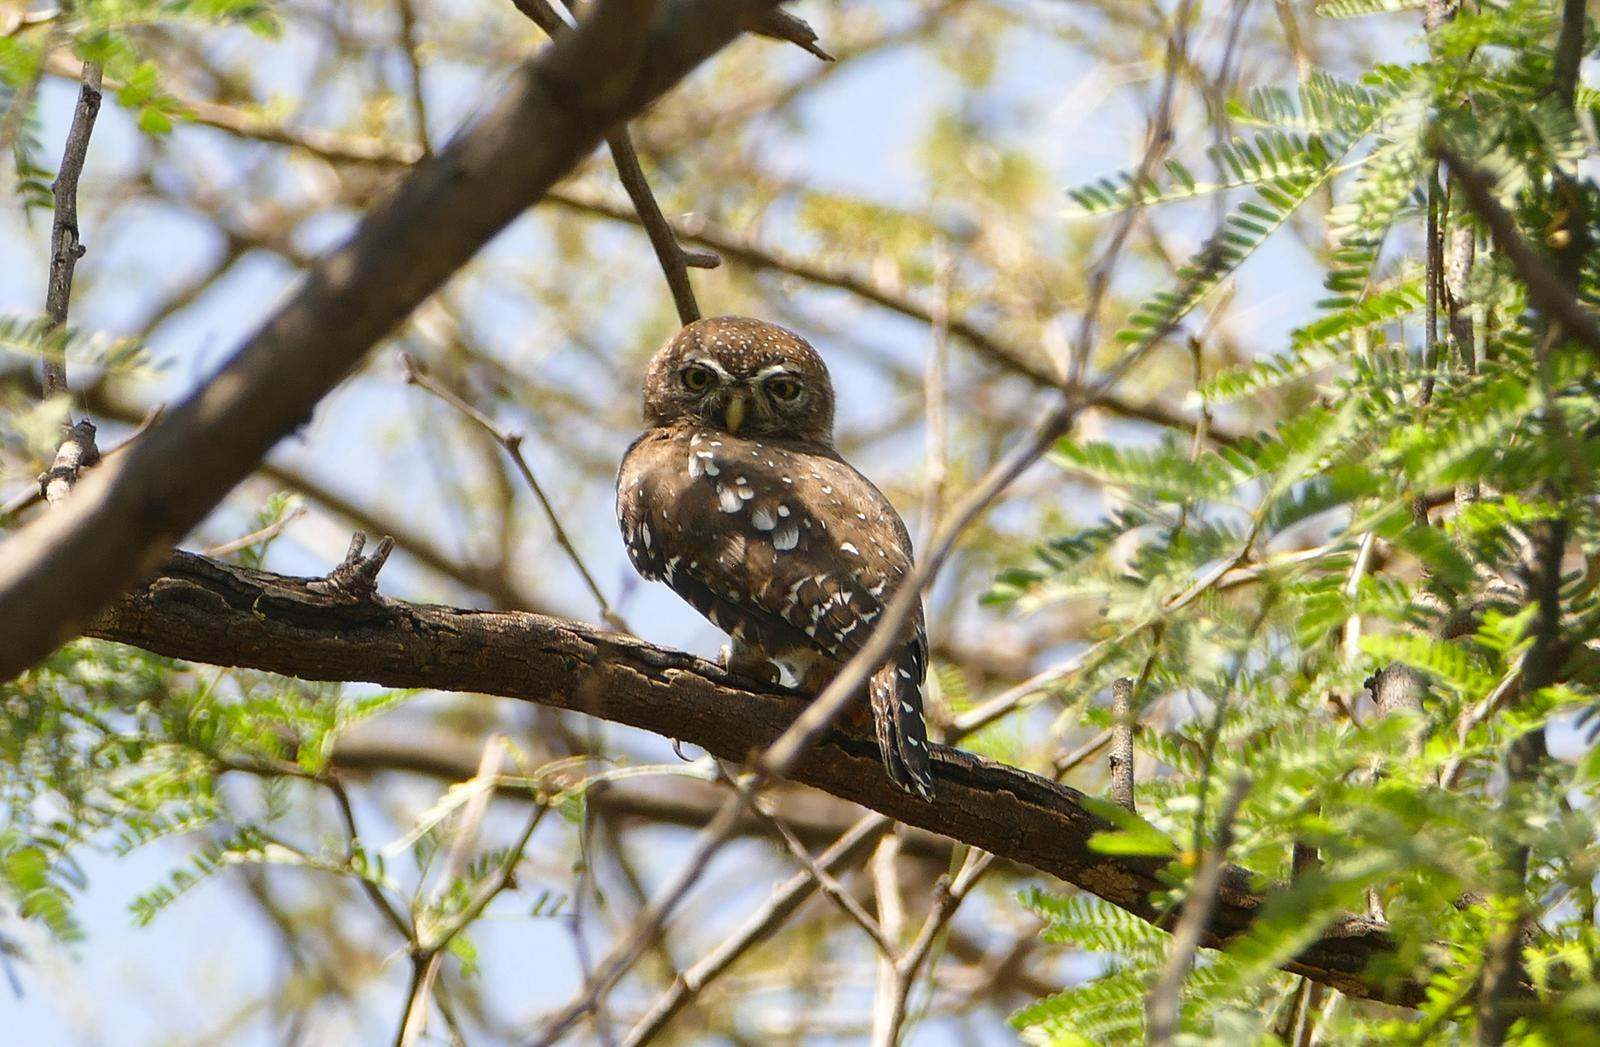 Pearl-spotted Owlet Photo by Randy Siebert